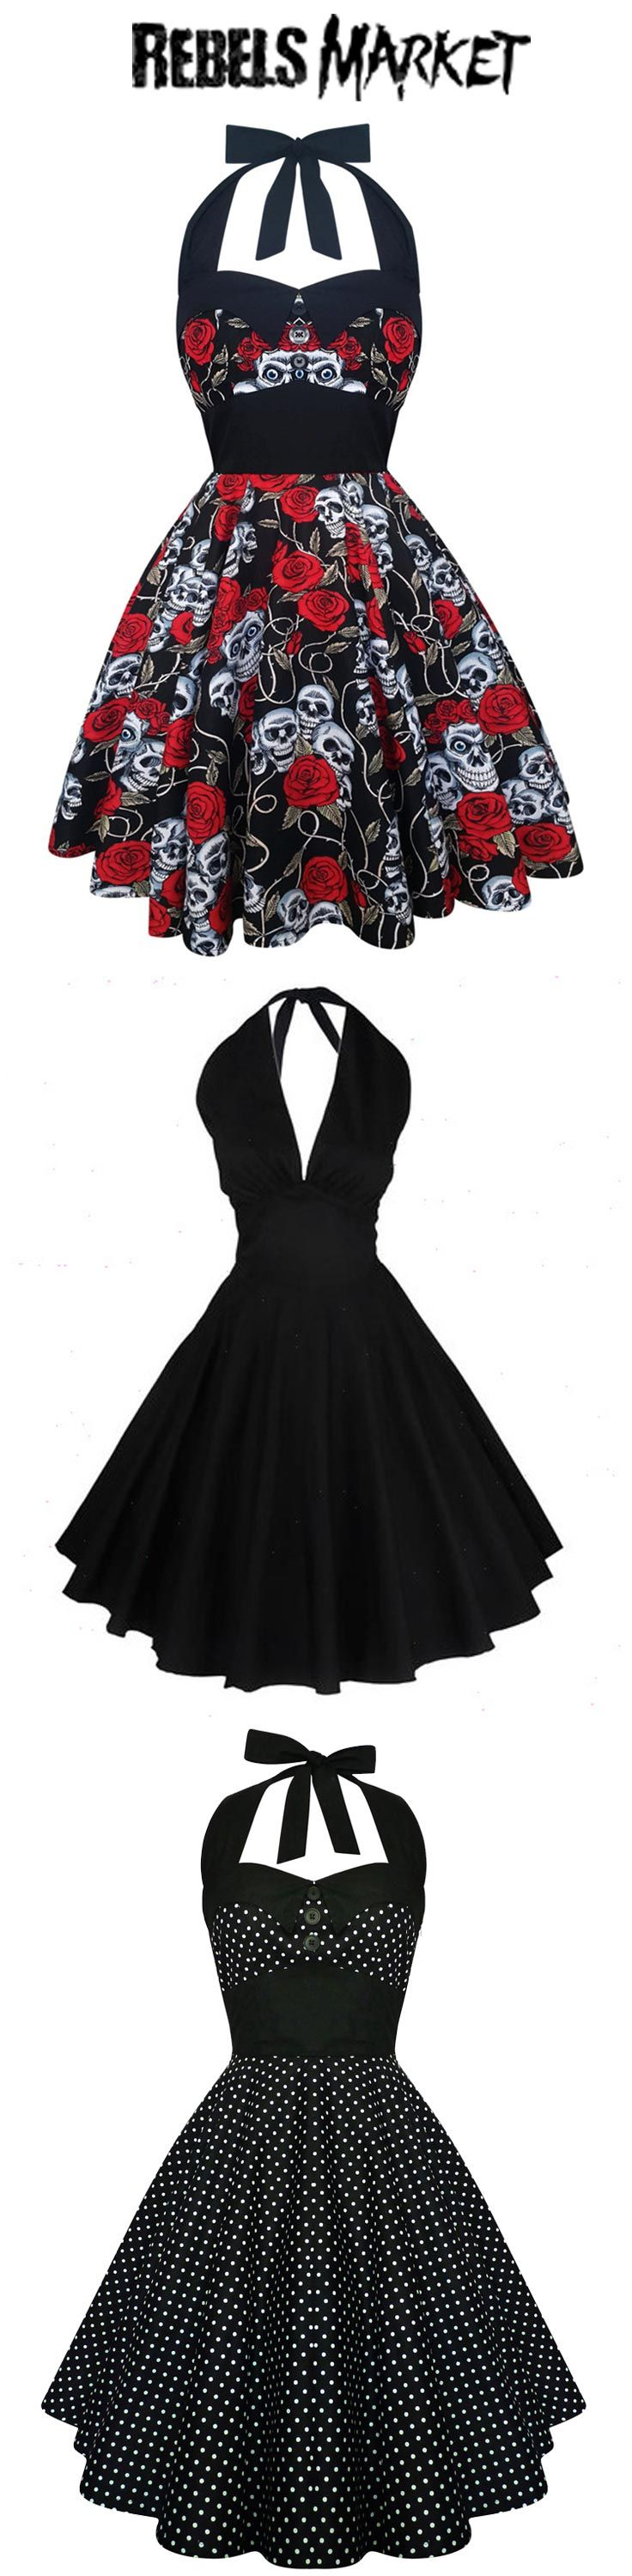 Shop women's rockabilly dresses at RebelsMarket!